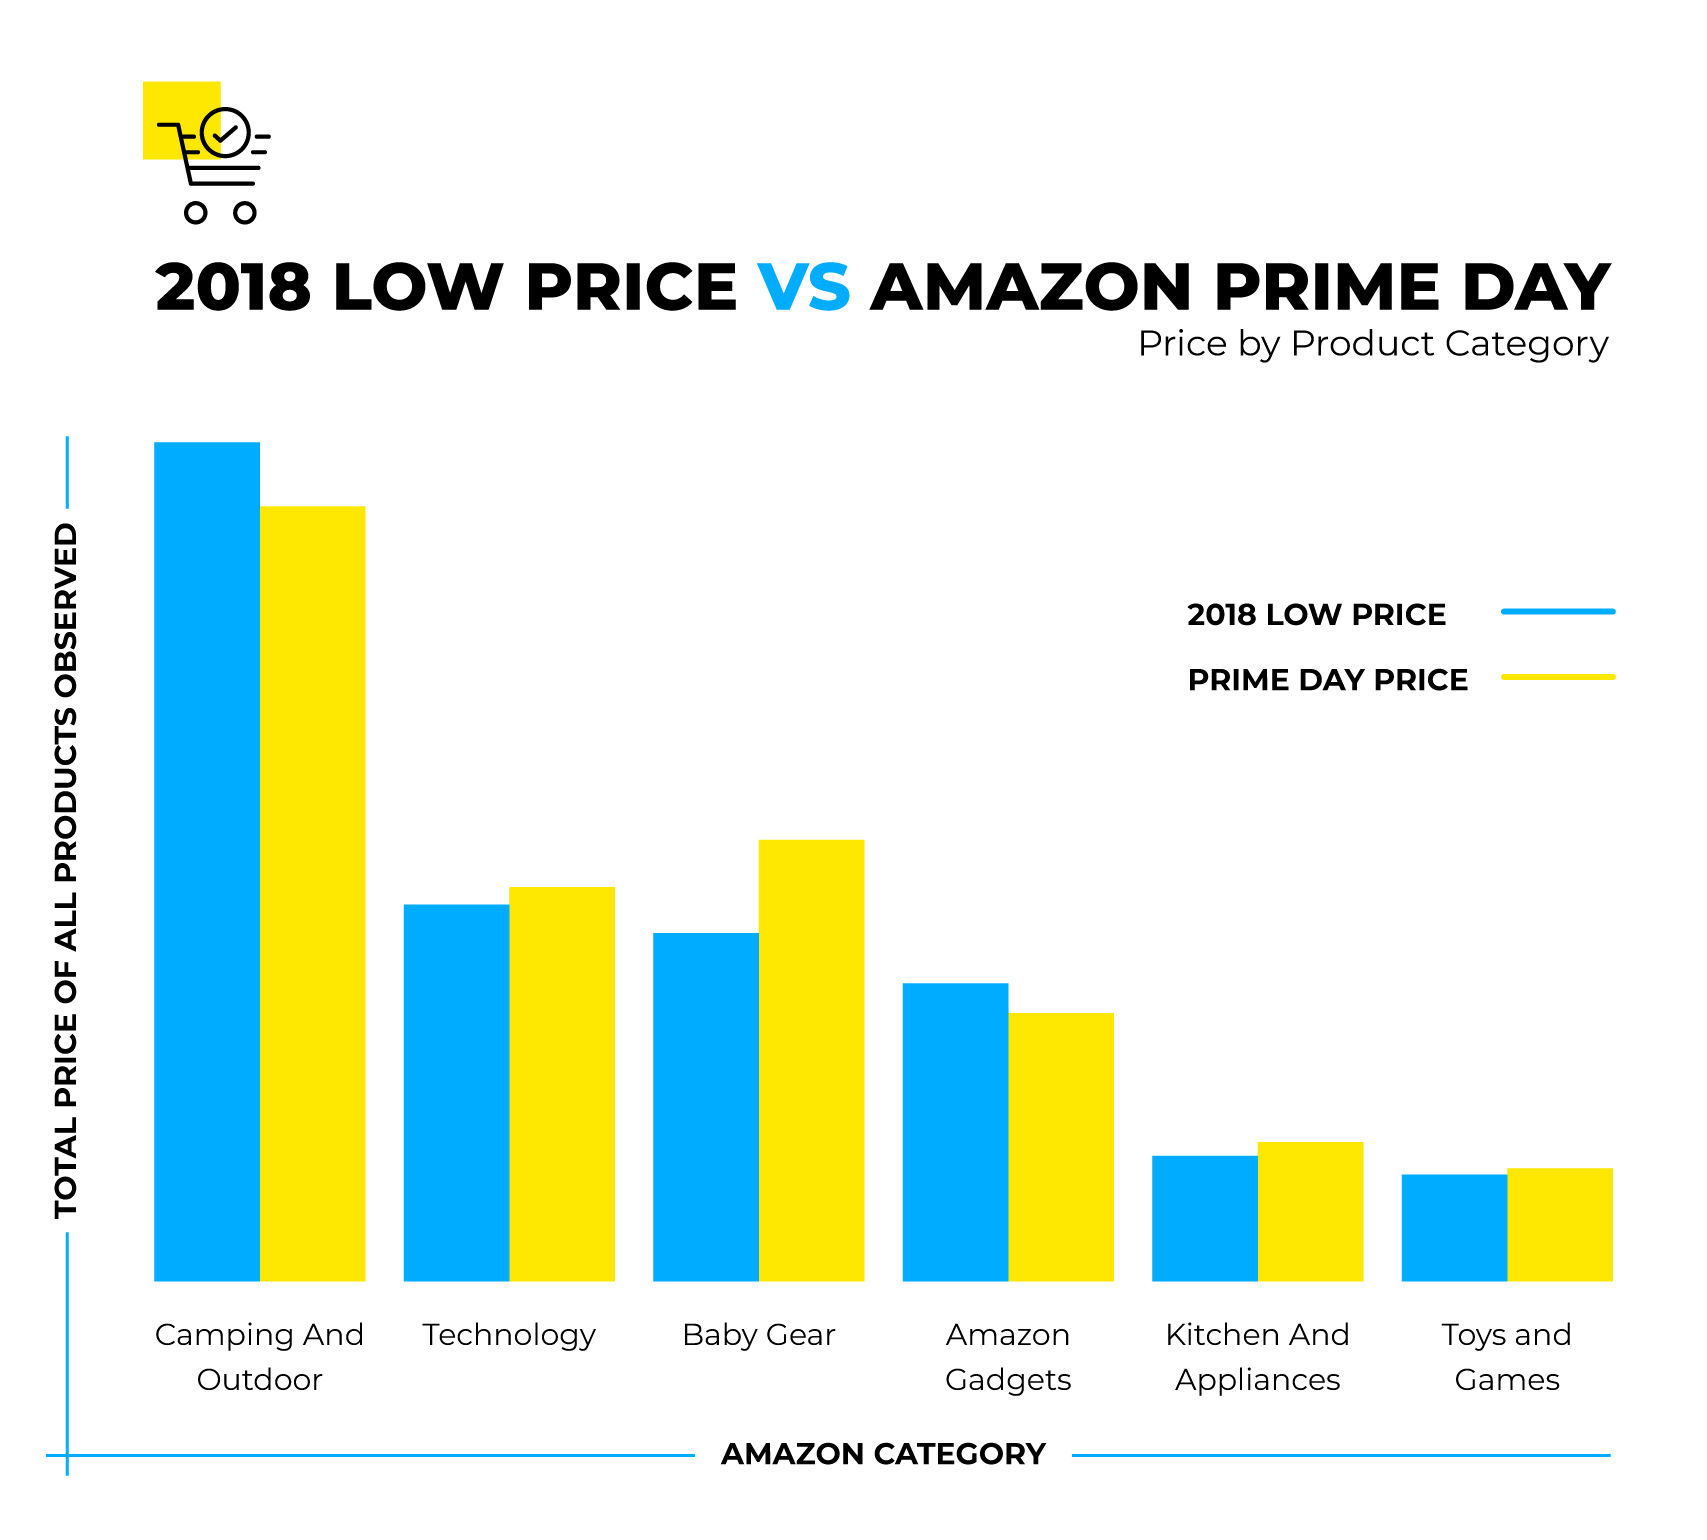 2018 Low Price VS Amazon Prime Day Price by Product Category